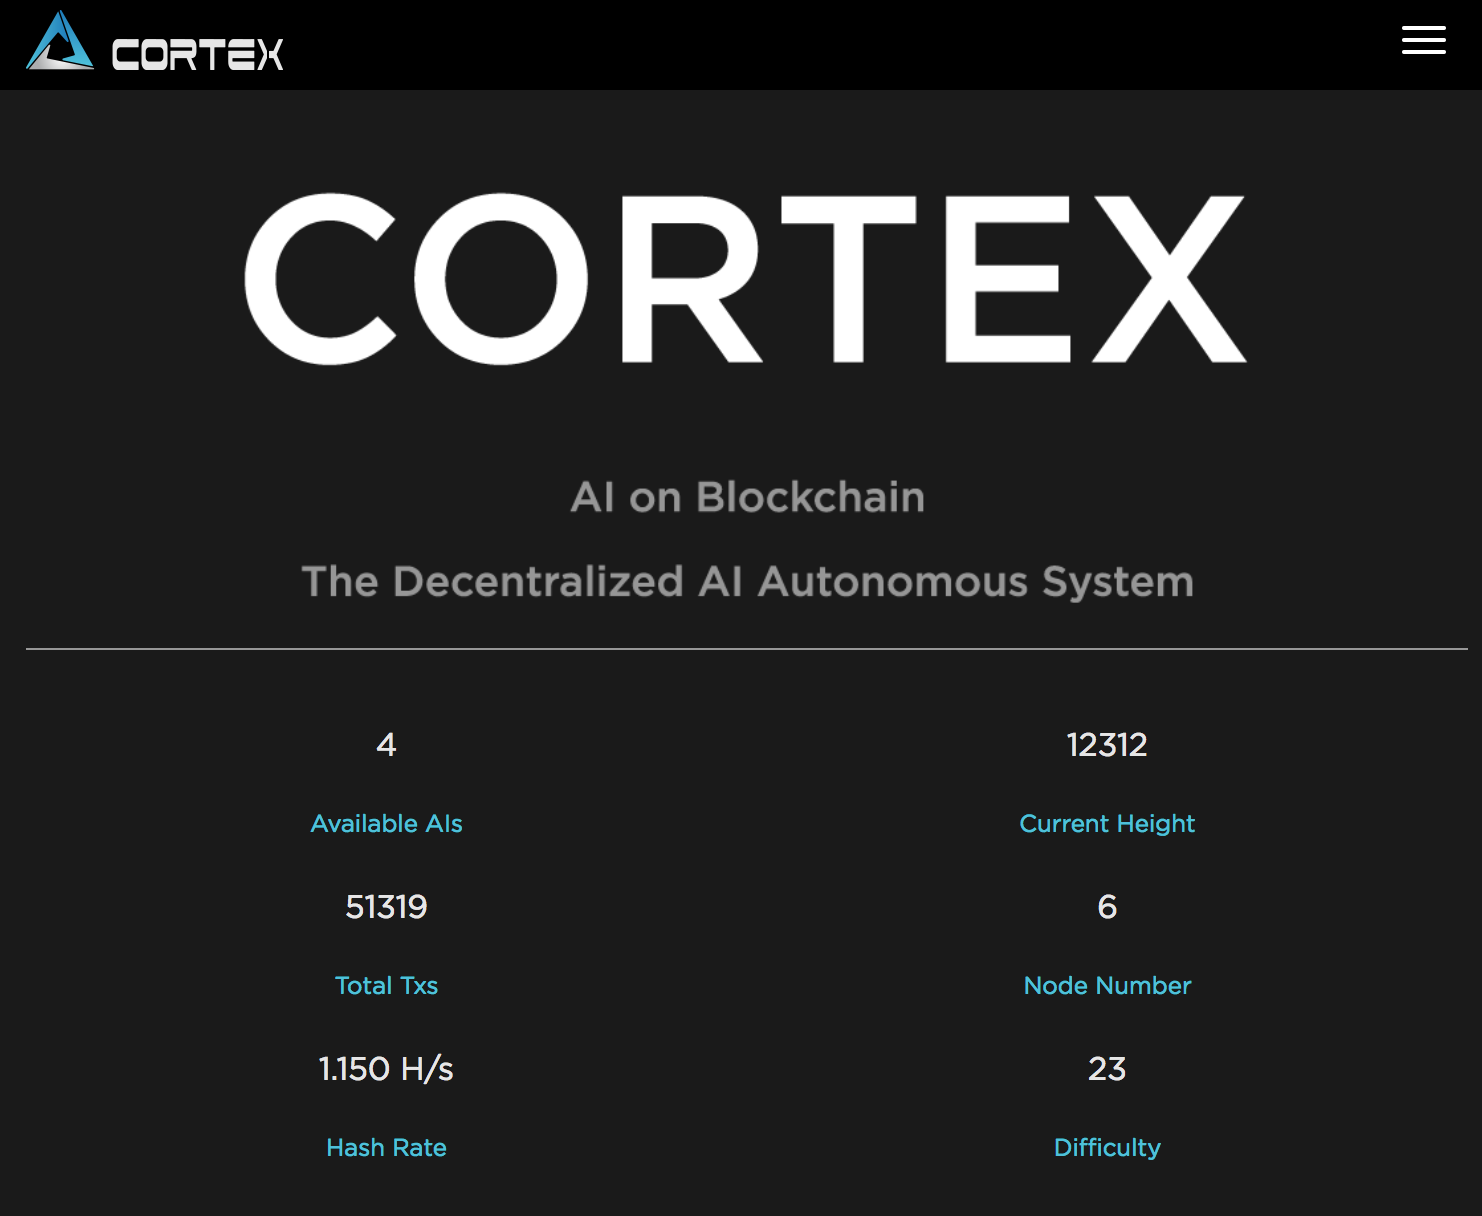 /how-cortex-brings-ai-on-the-blockchain-86d08922bb2a feature image